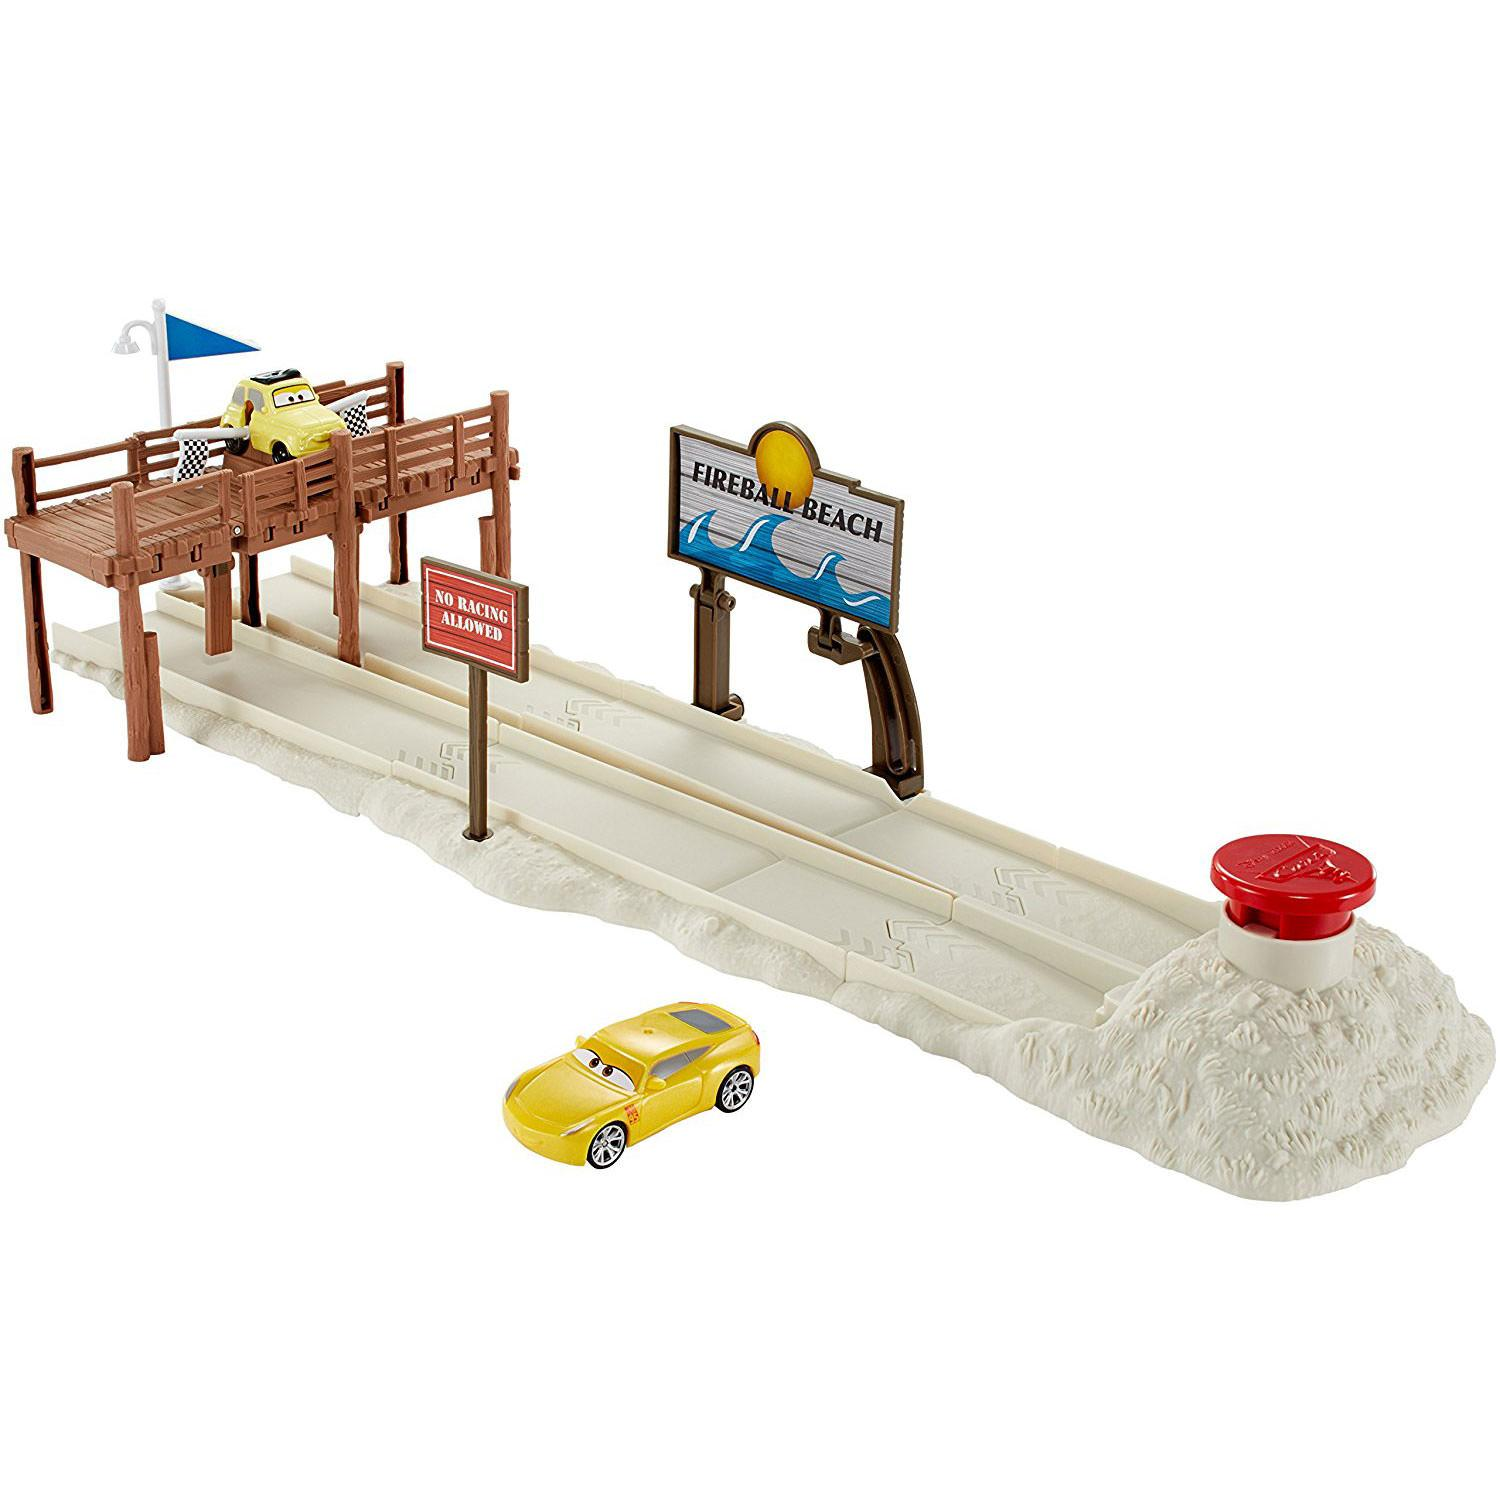 Cars Fireball Beach Run Playset1